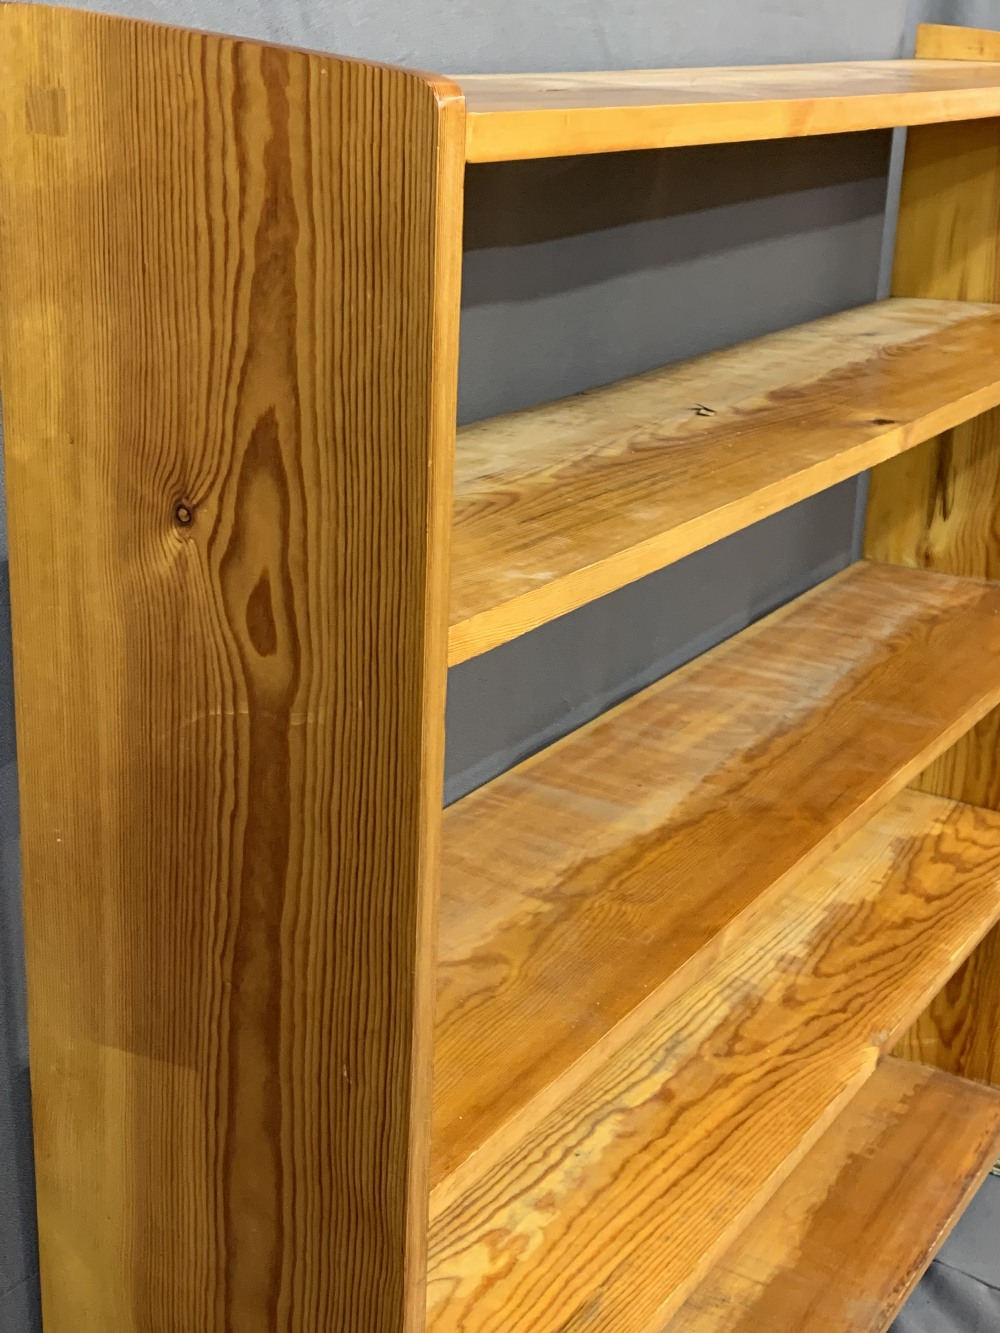 PINE BOOKCASES (2) -195cms H, 92cms W, 20cms D and 127cms H, 131cms W, 26cms D - Image 3 of 3